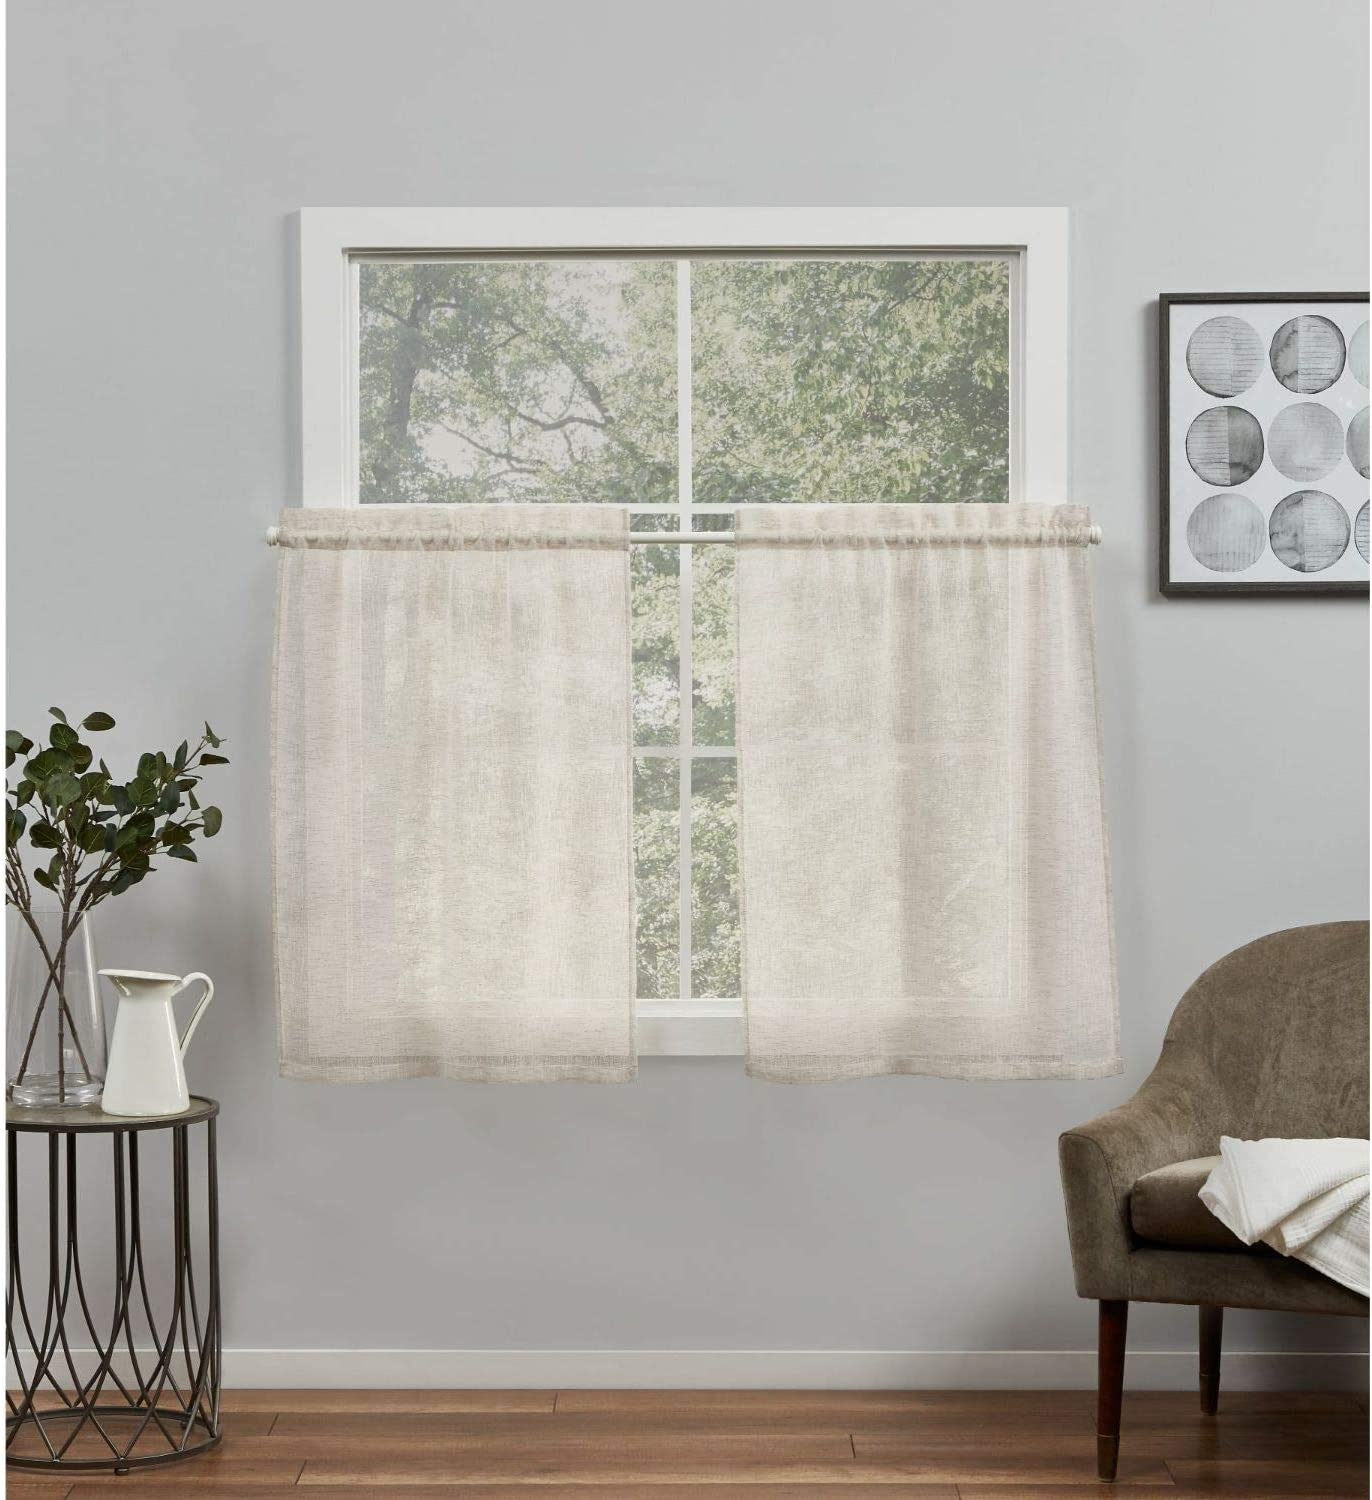 Exclusive Home Curtains Belgian Sheer Rod Pocket Tier Curtain Panel Pair, 26X24, Taupe